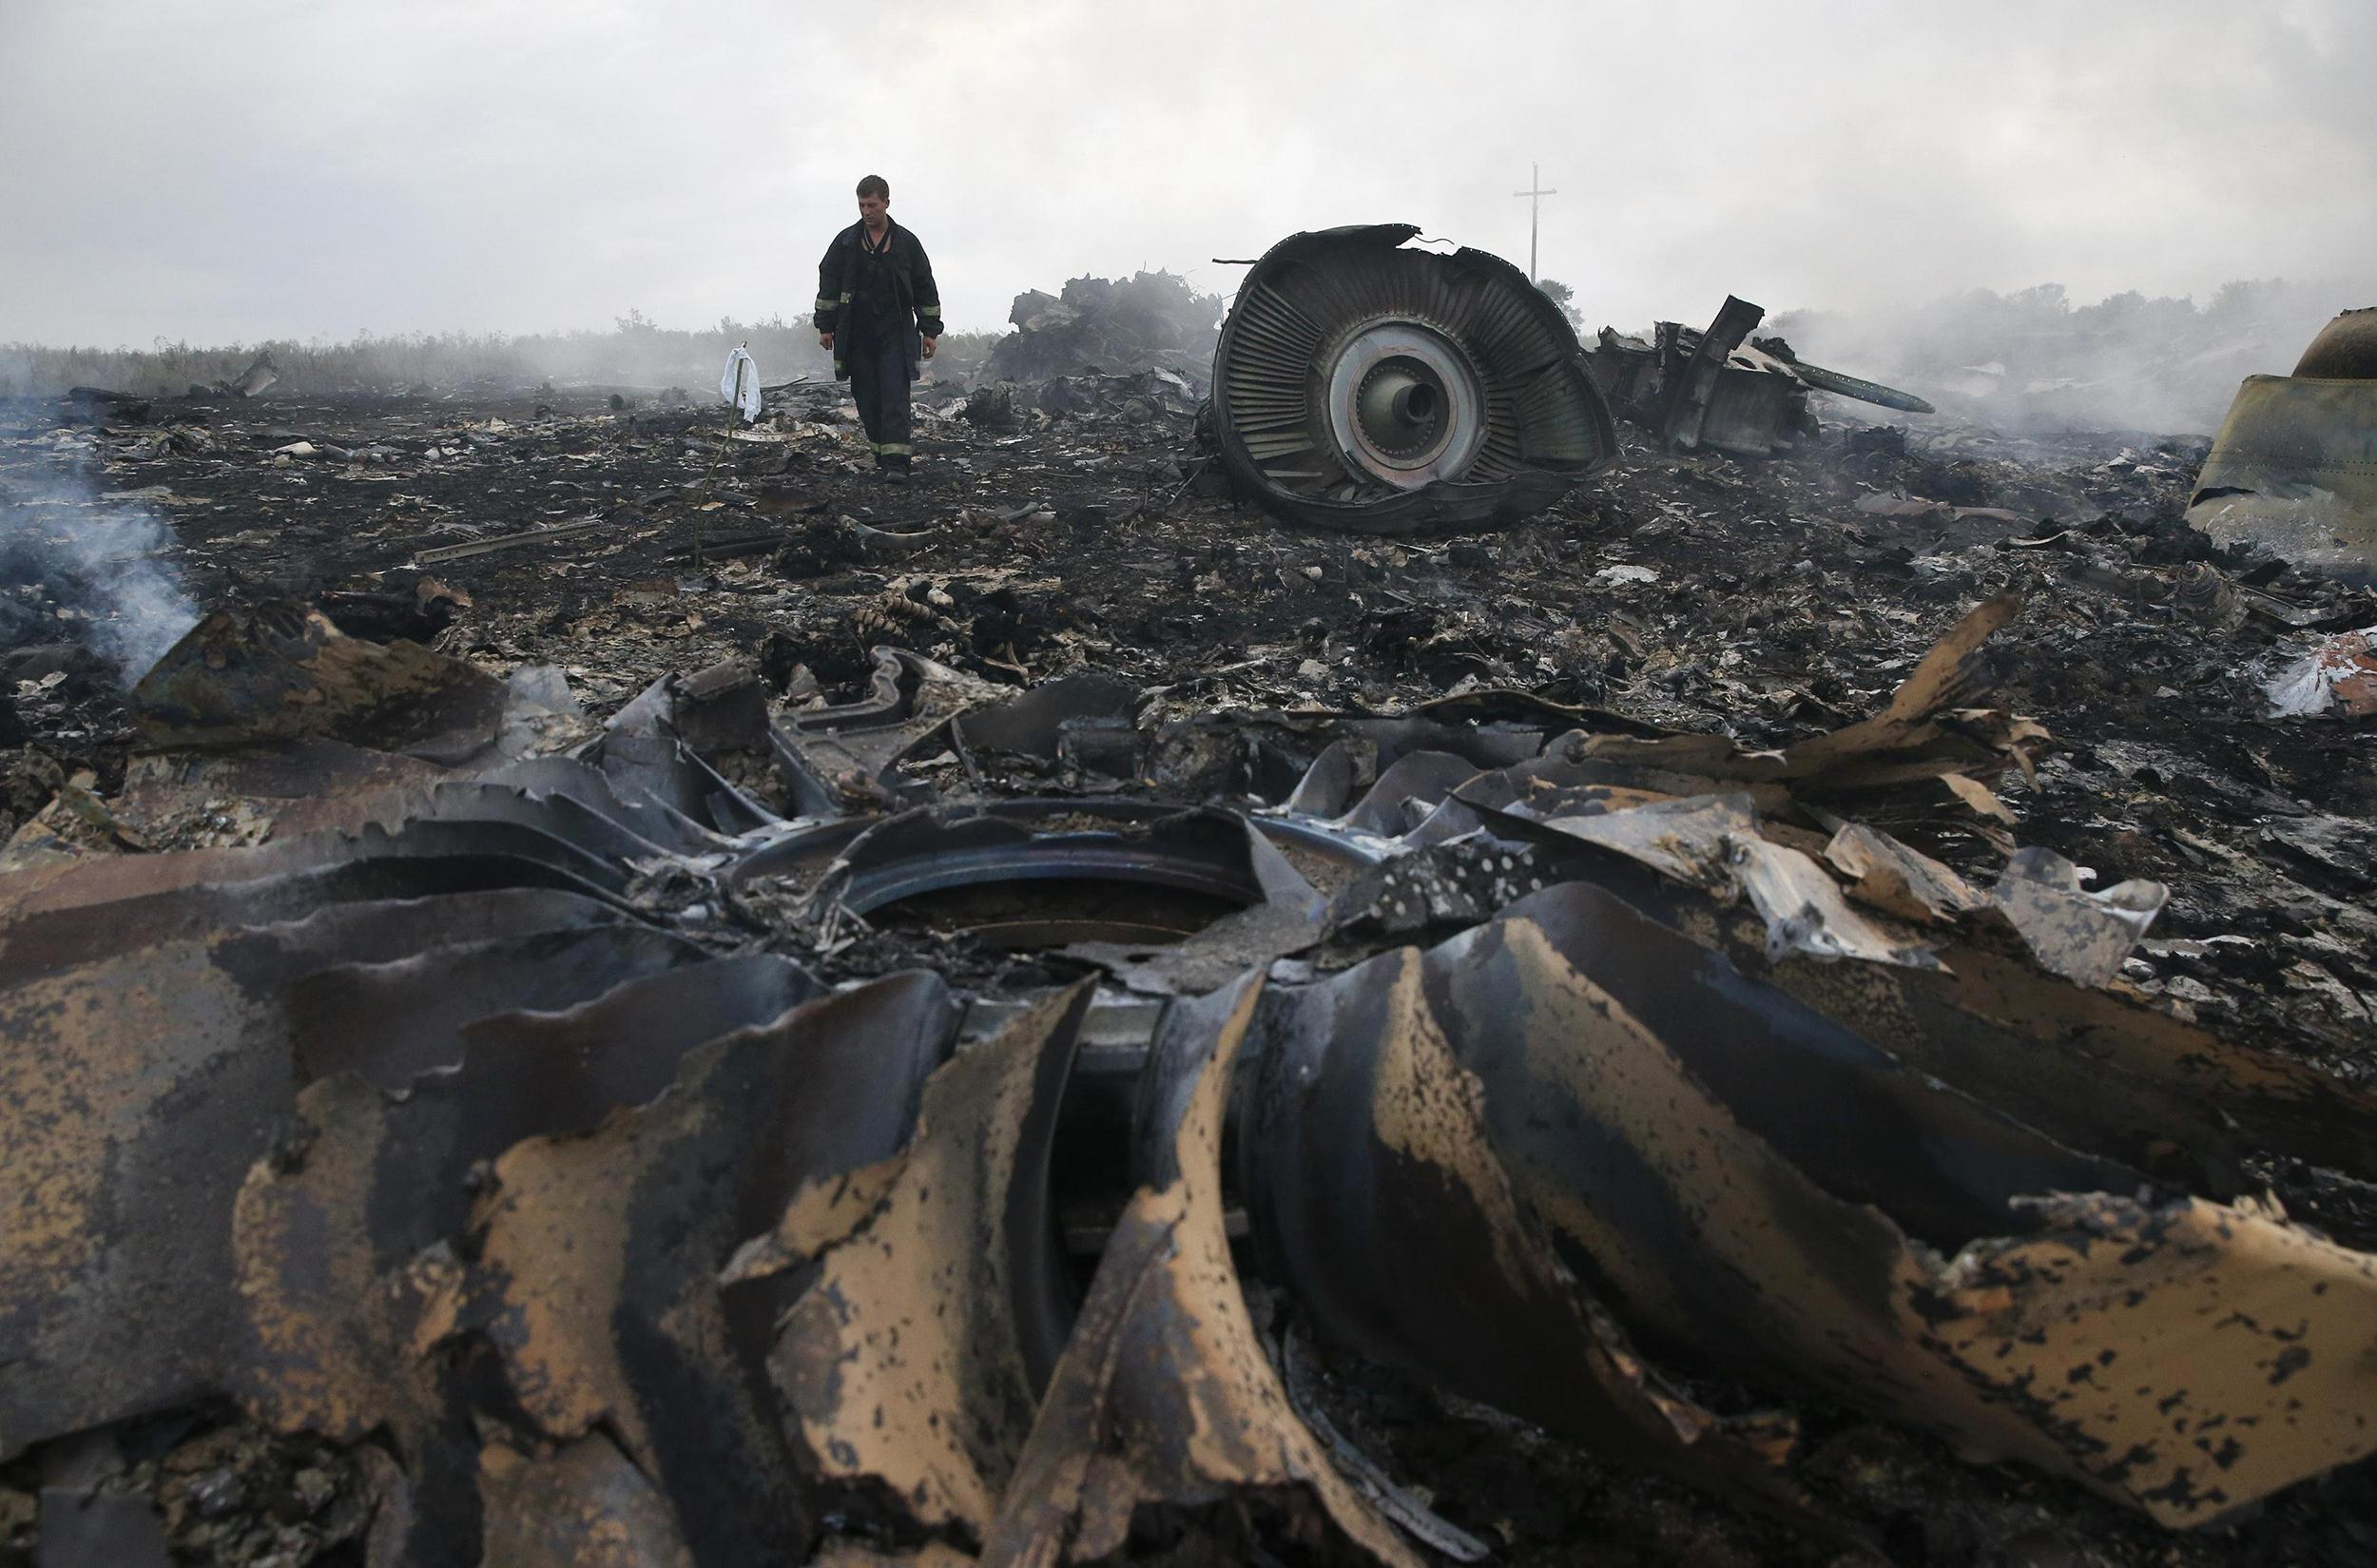 Image: Emergencies Ministry member walks at a site of a Malaysia Airlines Boeing 777 plane crash near the settlement of Grabovo in the Donetsk region